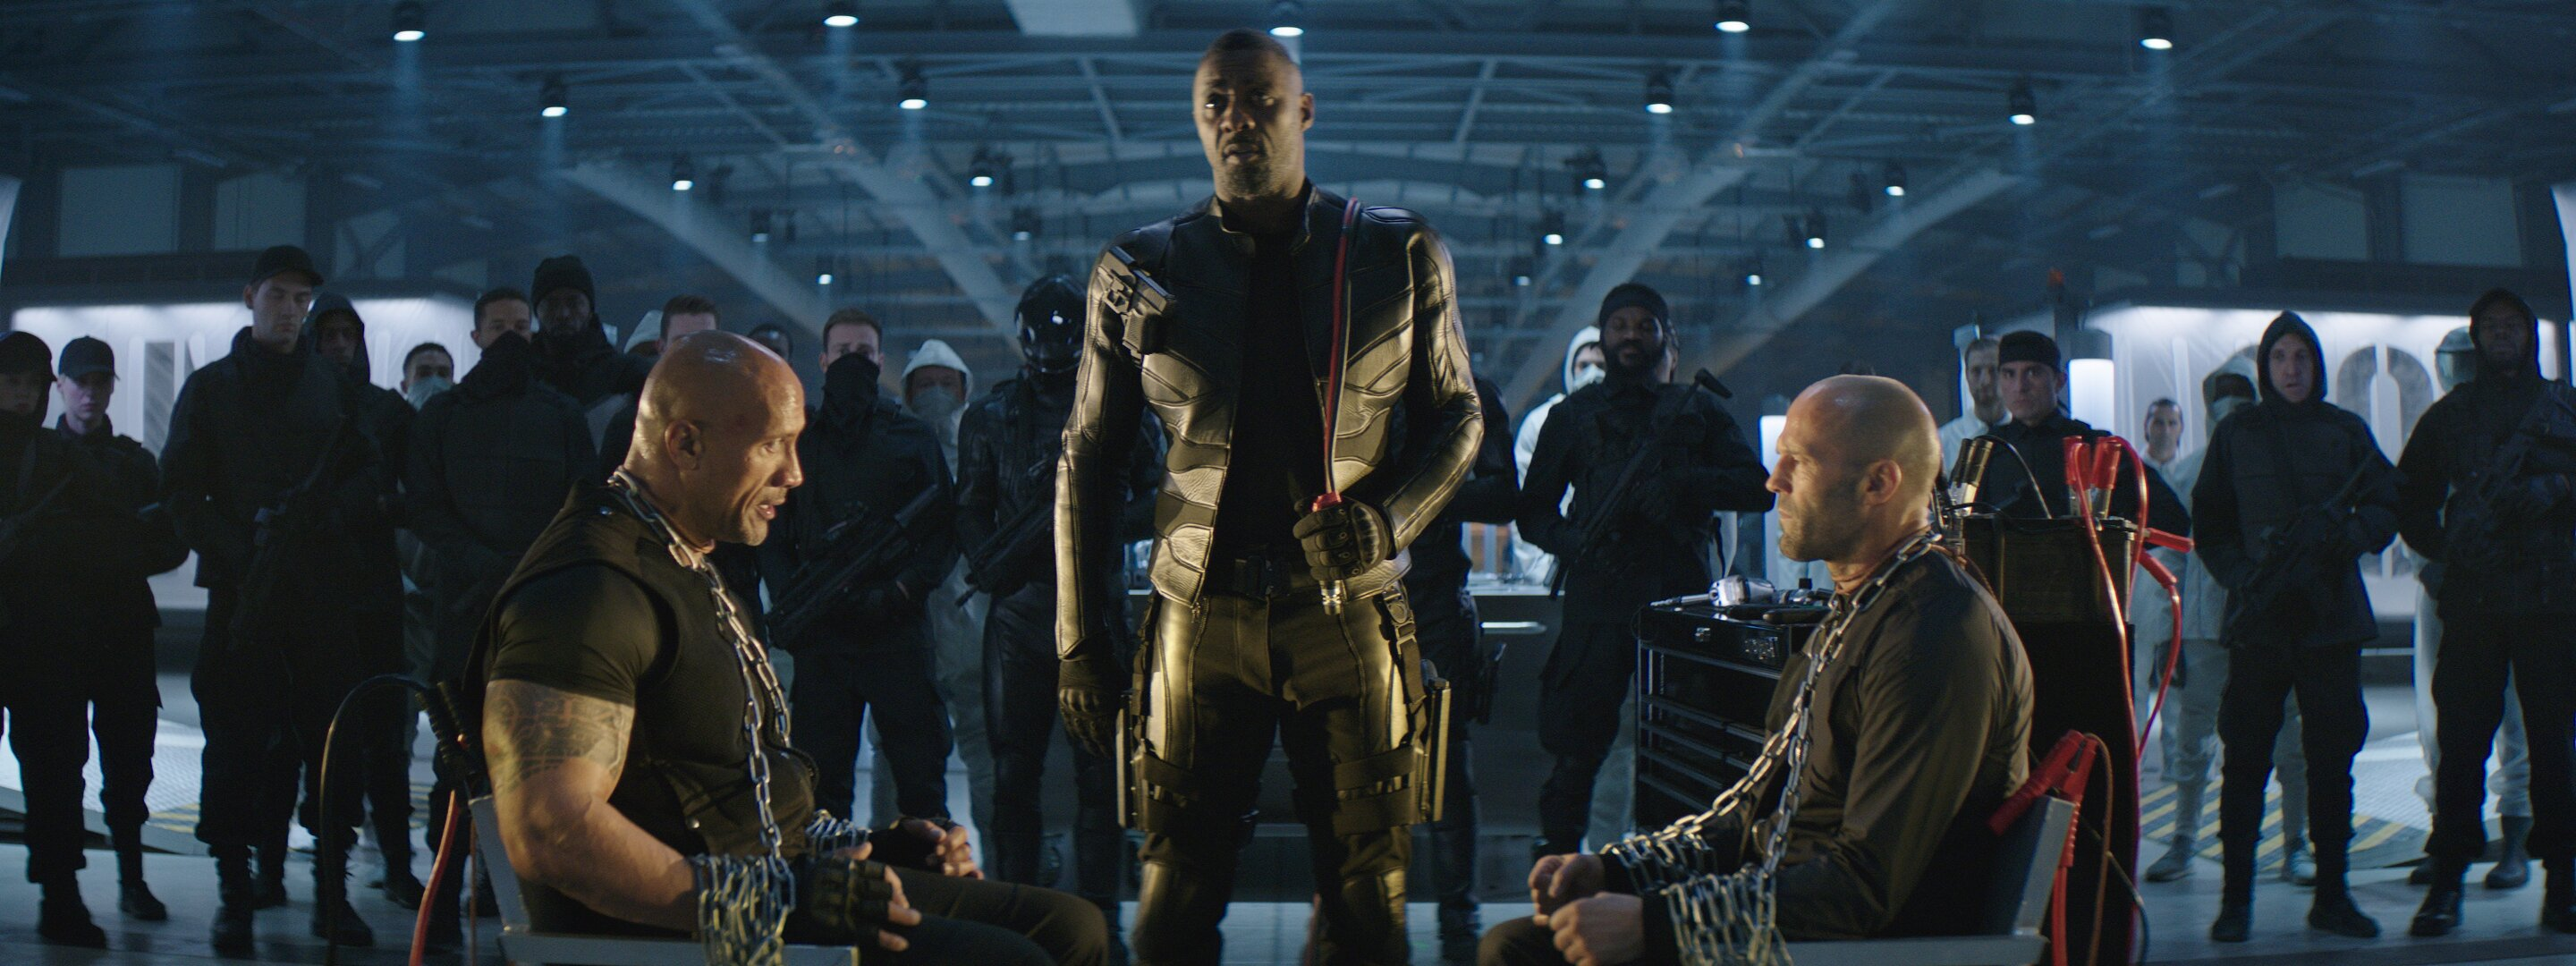 Official Trailer Released for FAST & FURIOUS PRESENTS: HOBBS & SHAW